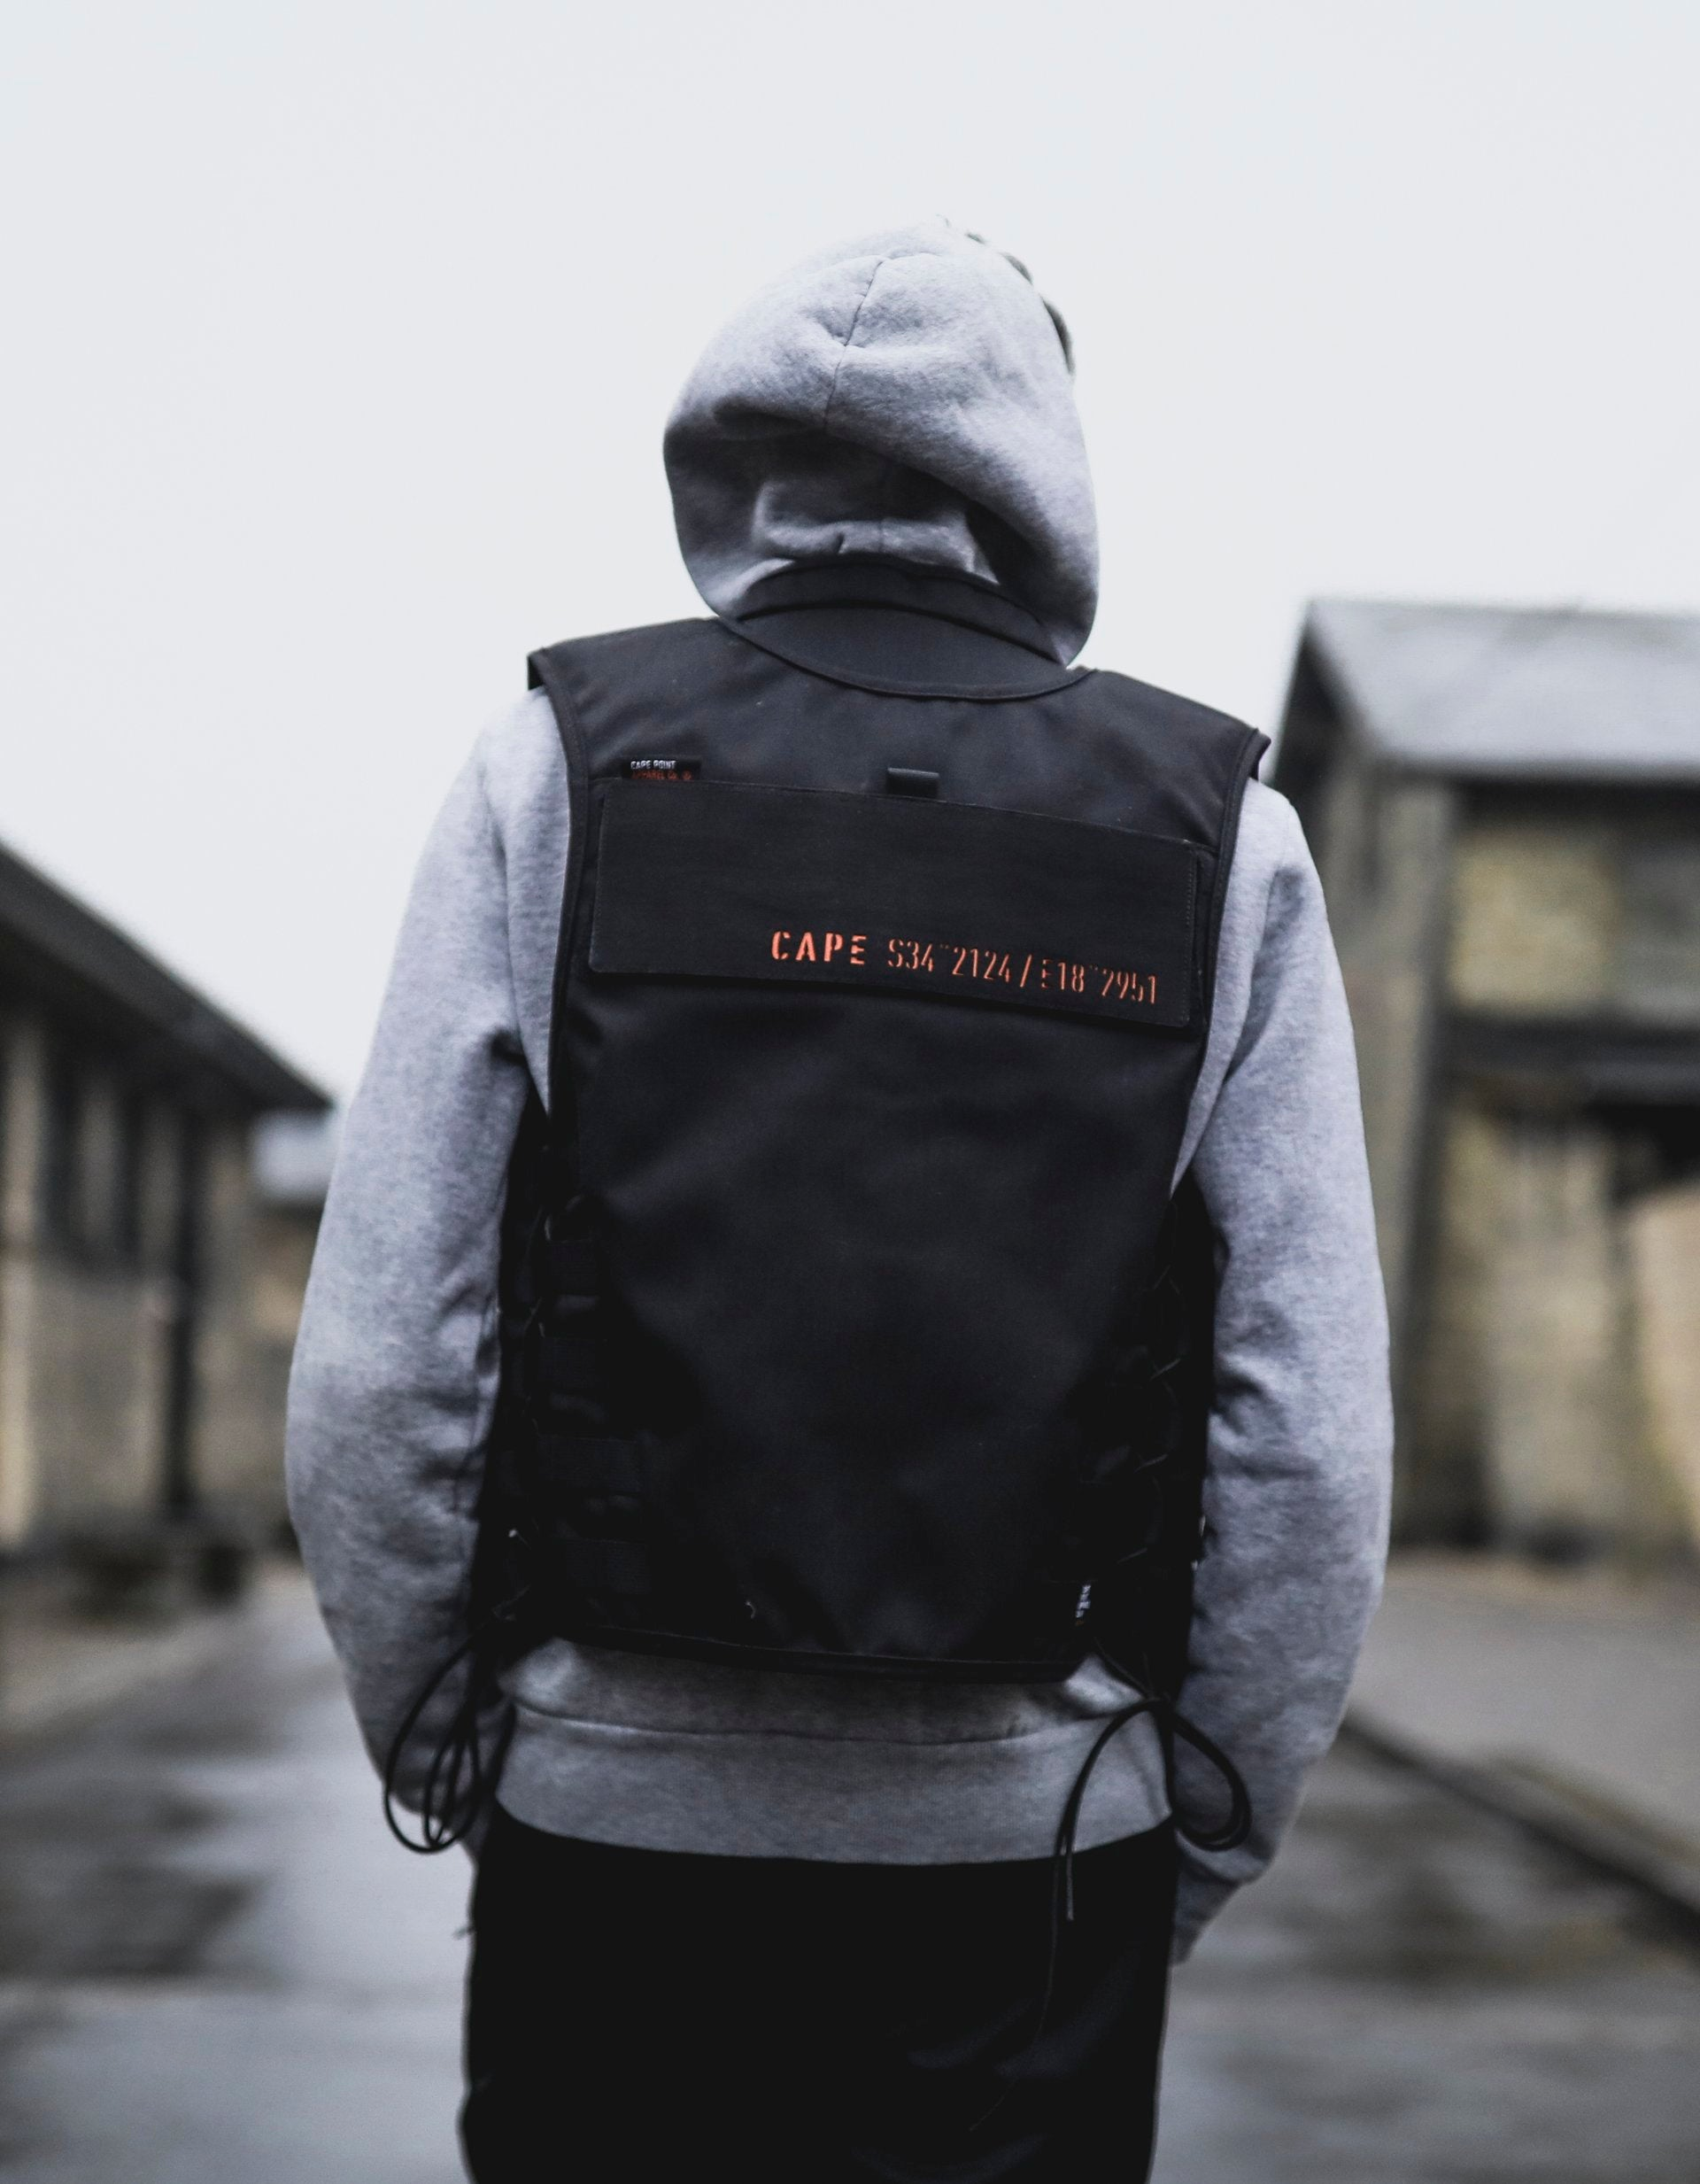 The CPH Flak Vest by Cape Point Apparel